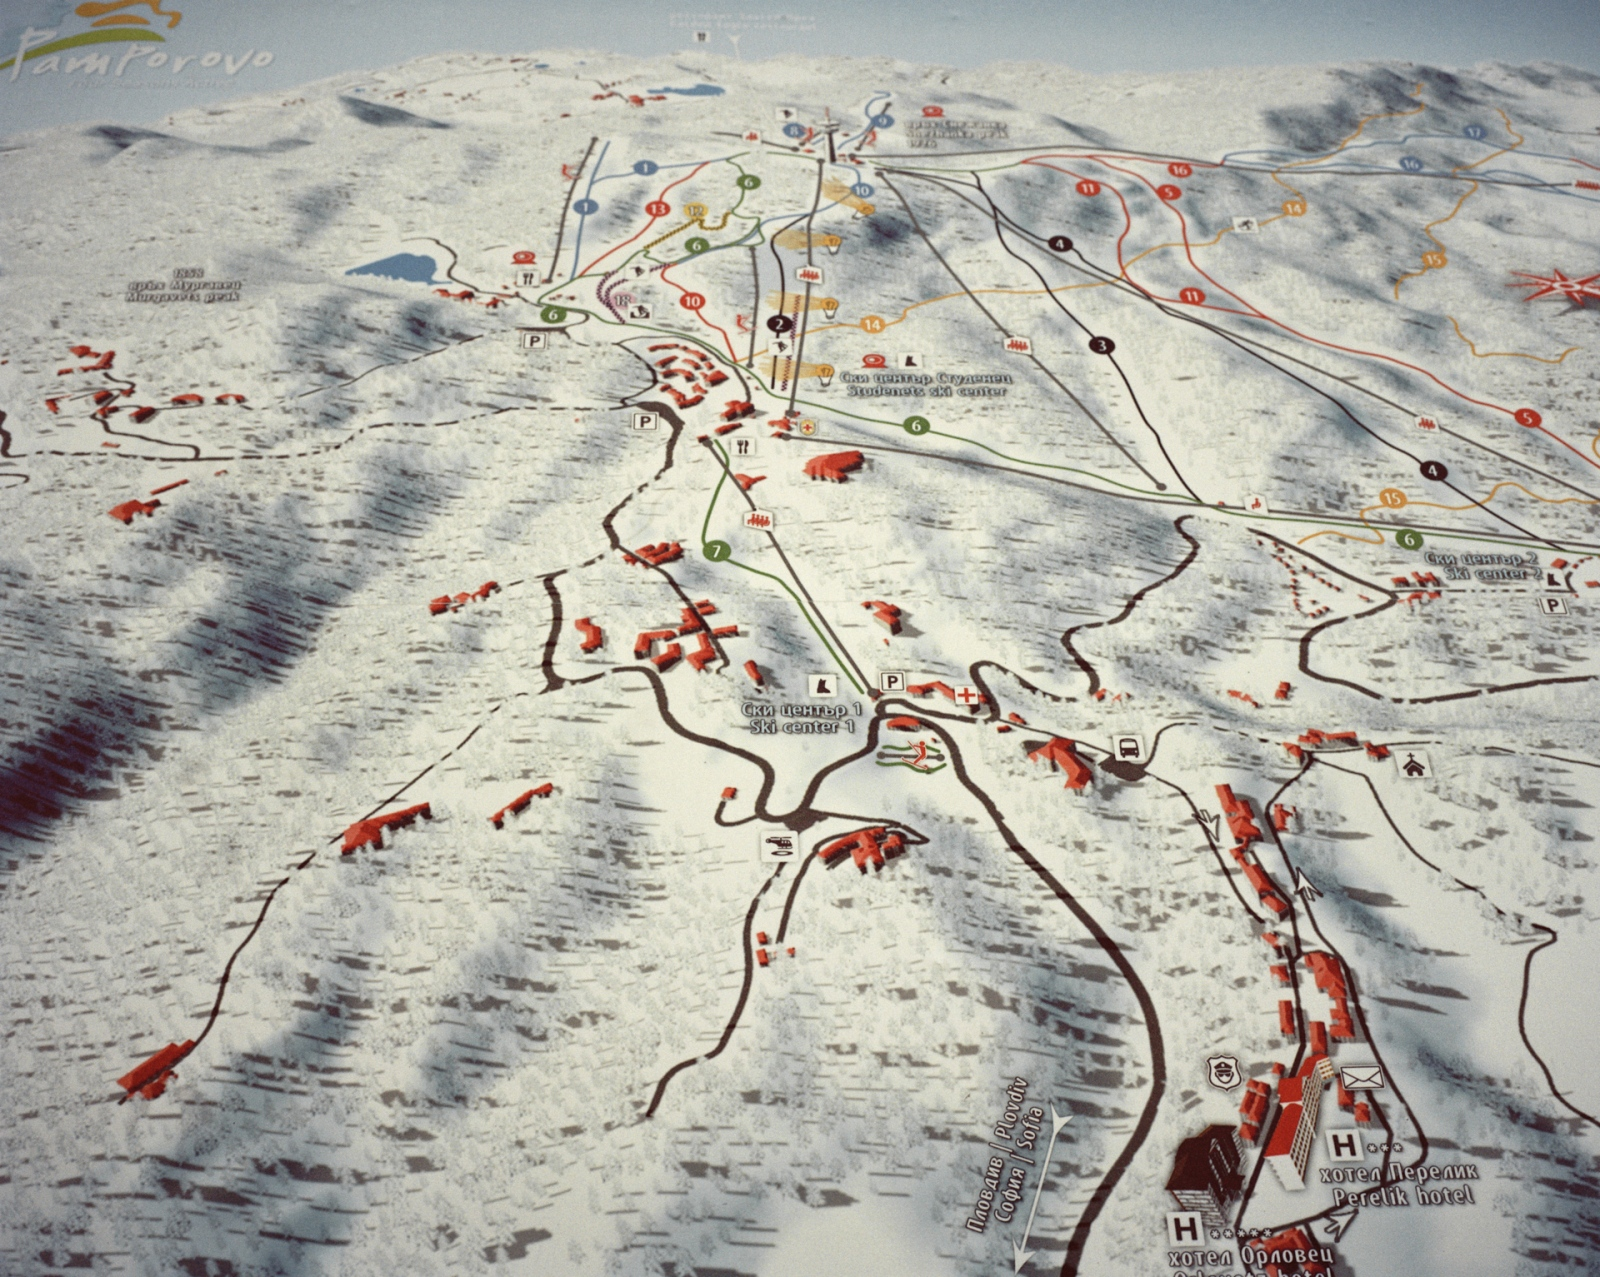 Bulgaria, Pamporovo, a picture showing the local ski resort and its tracks.